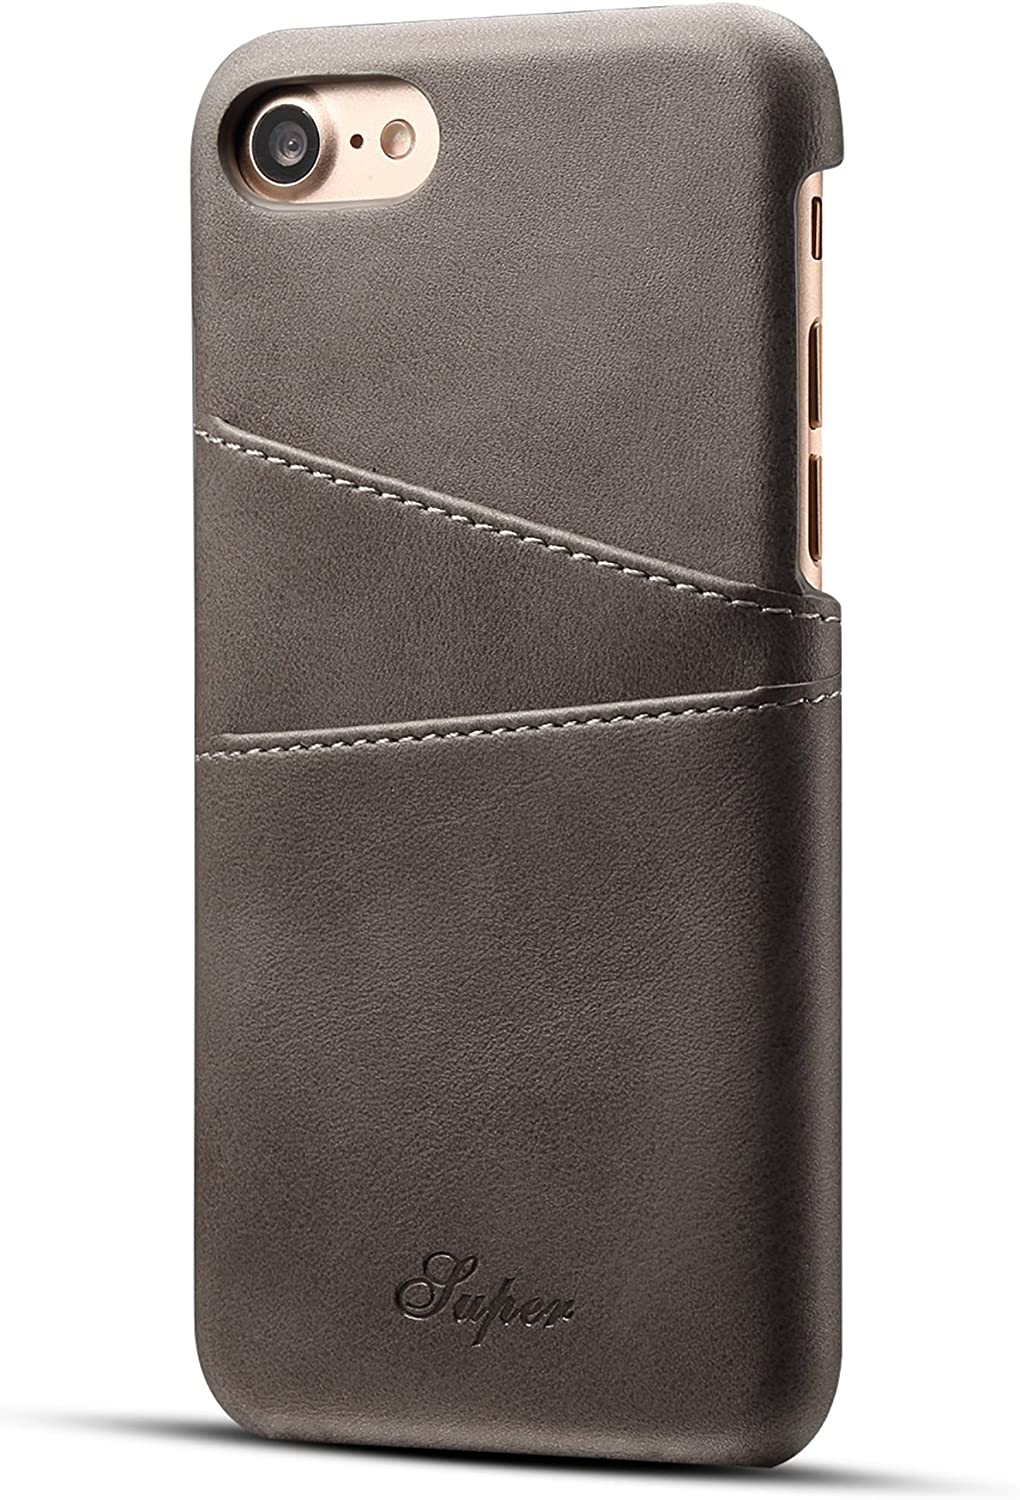 Wallet Case iPhone 7/8 / iPhone SE 2020 with Credit Card Holder, Synthetic Leather Slim Back Cover Protective Case